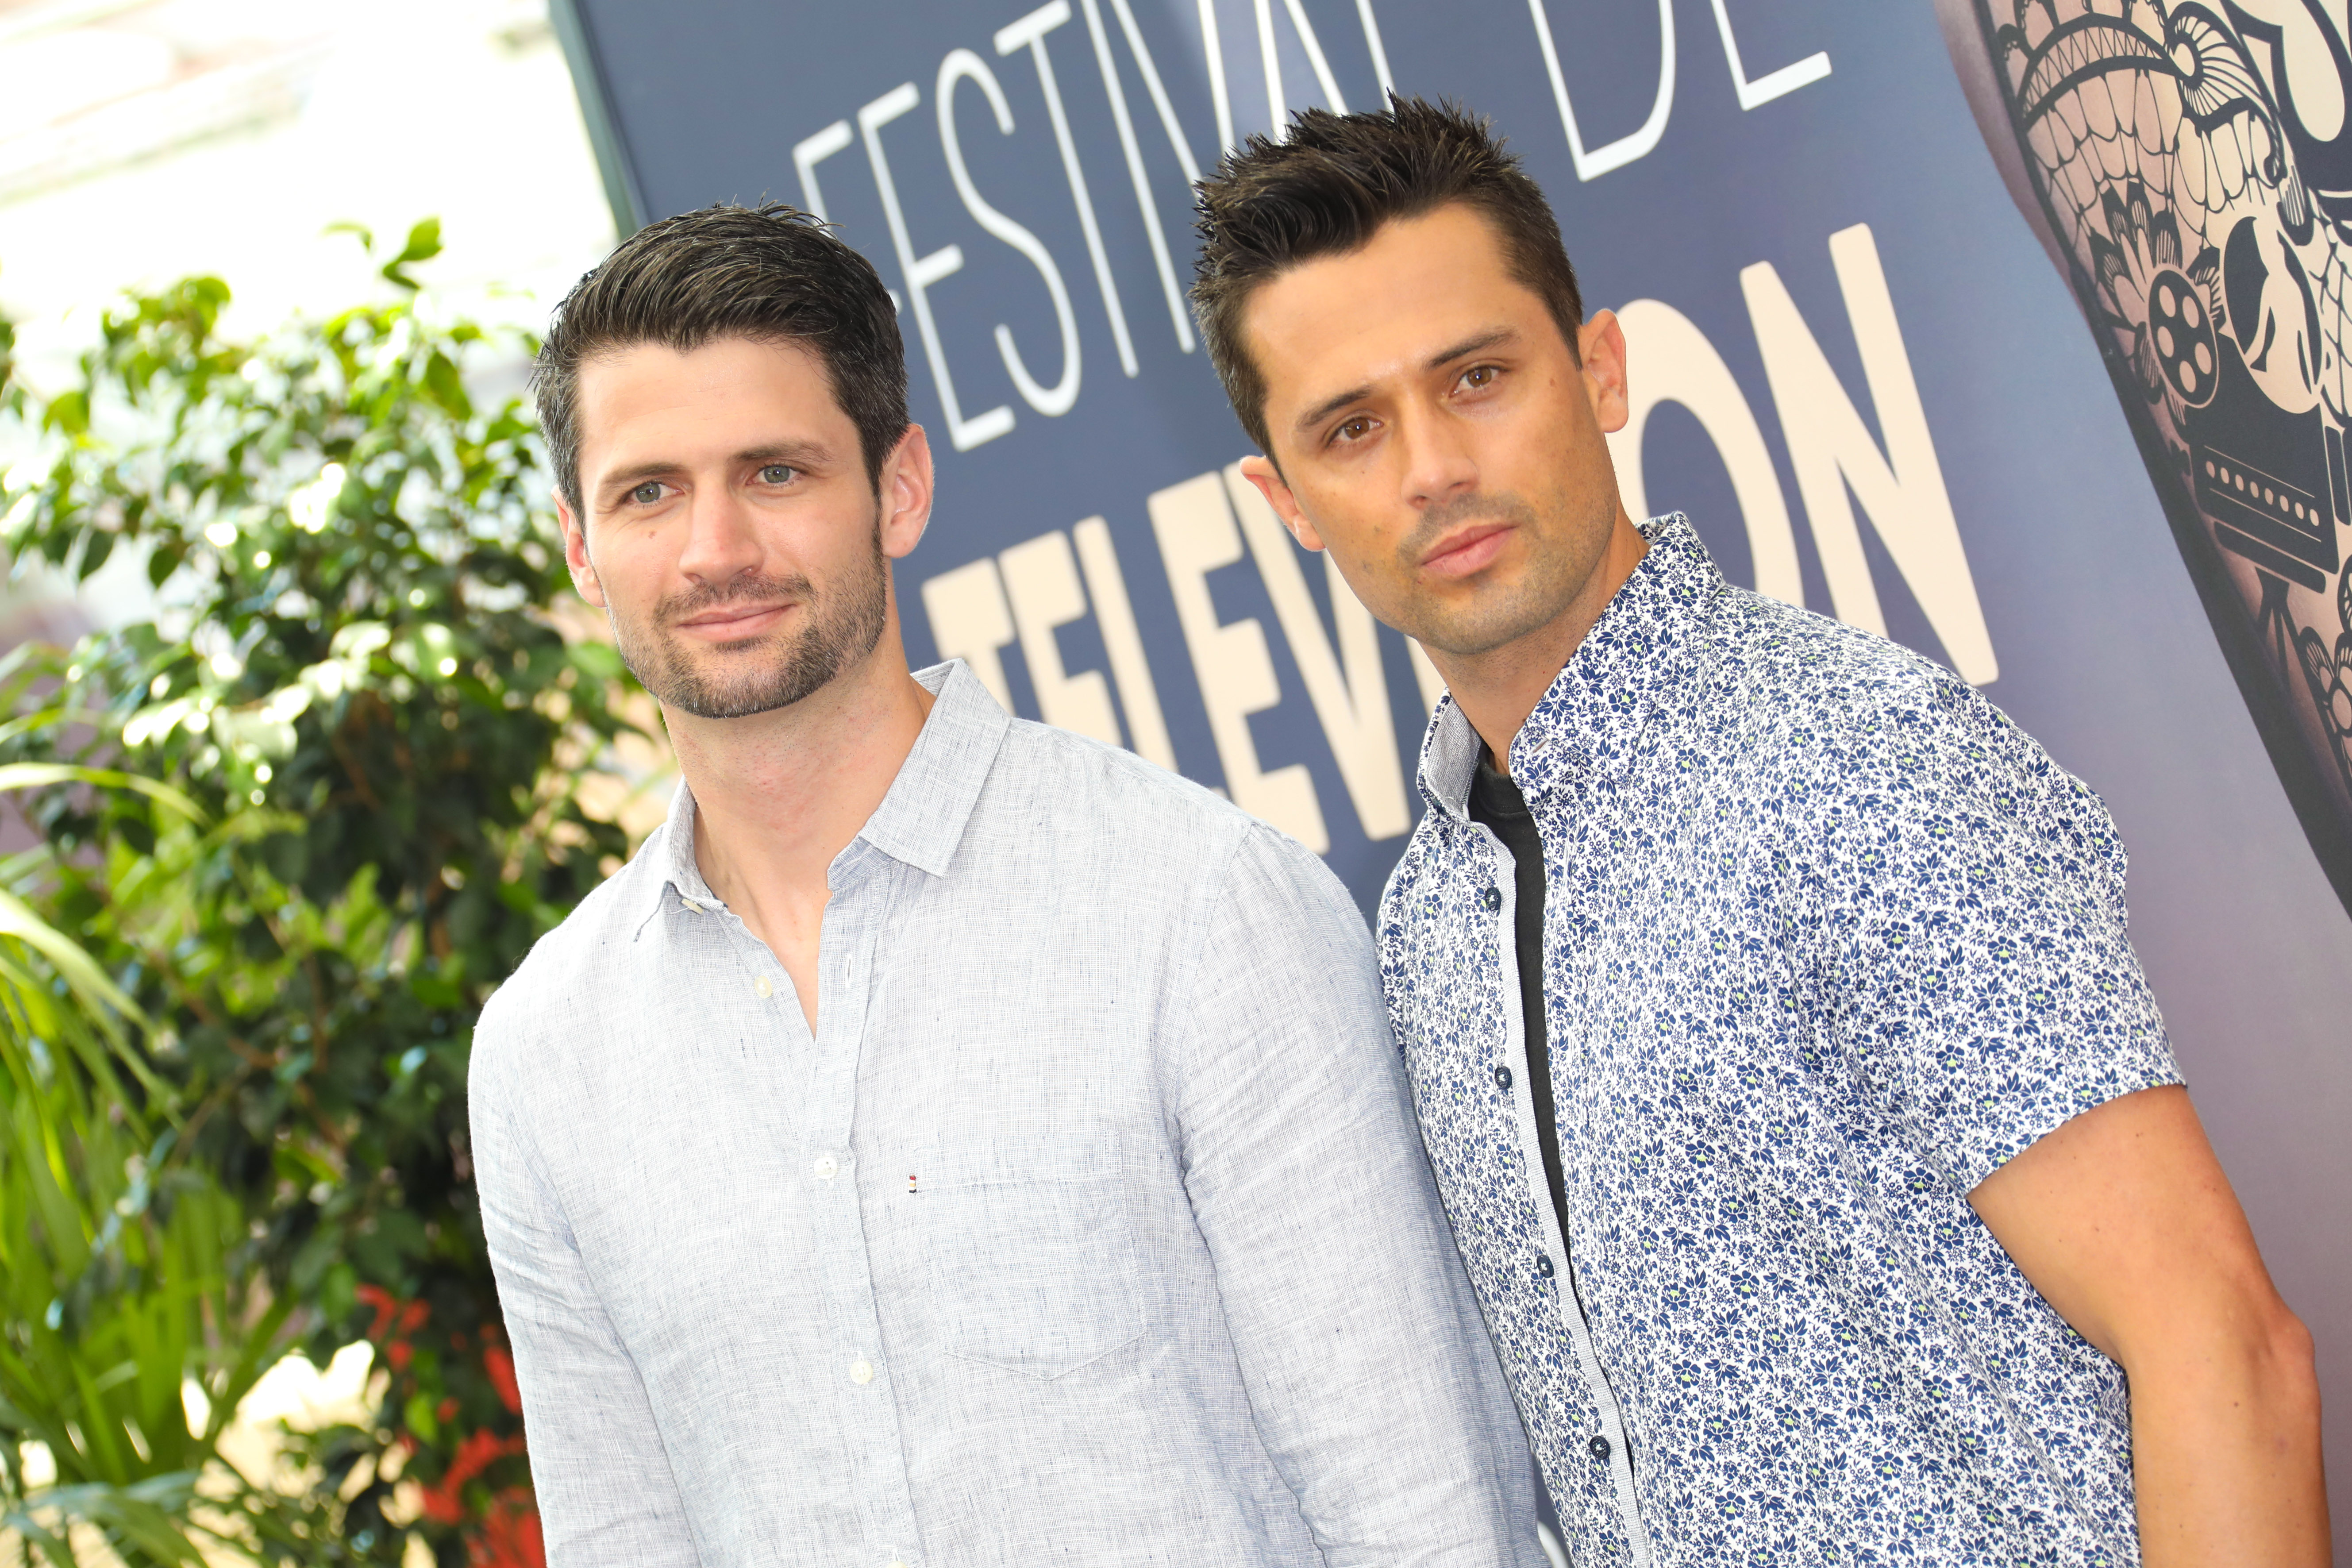 James Lafferty and Stephen Colletti collab on Hulu show